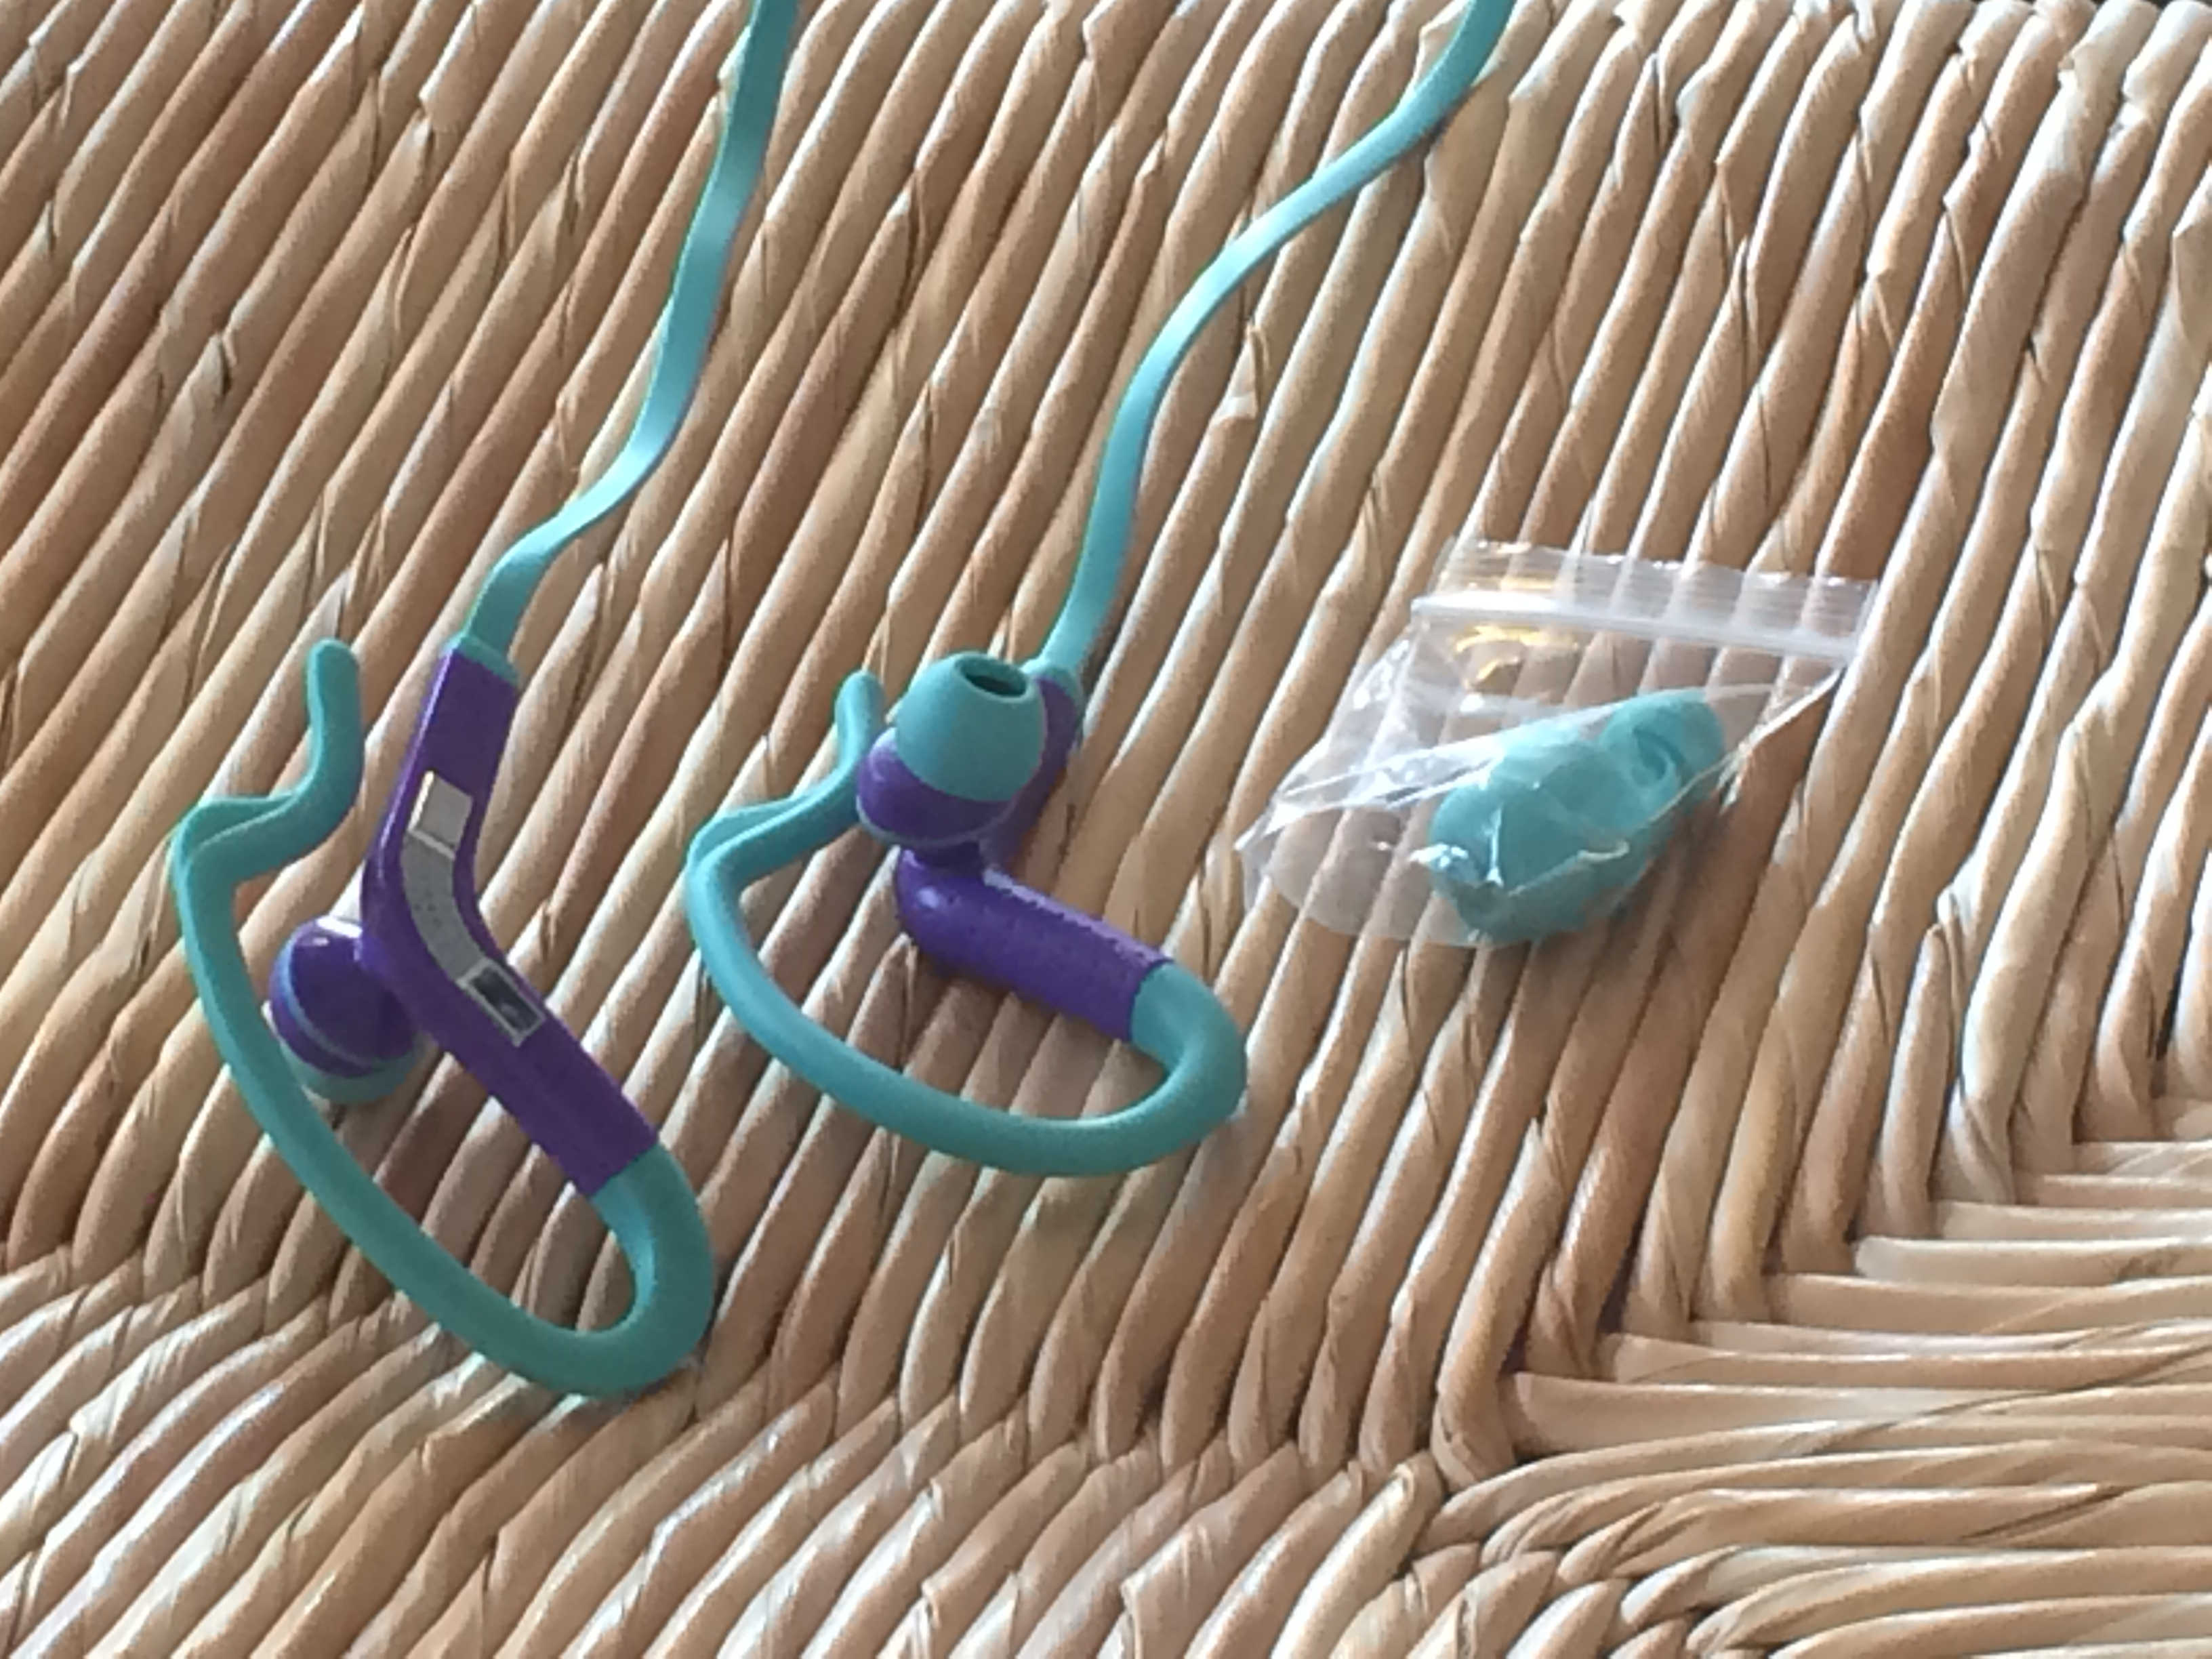 Review on Aduro Sport EC10 Sweatproof Stereo Earbuds w/ Mic: Turquoise